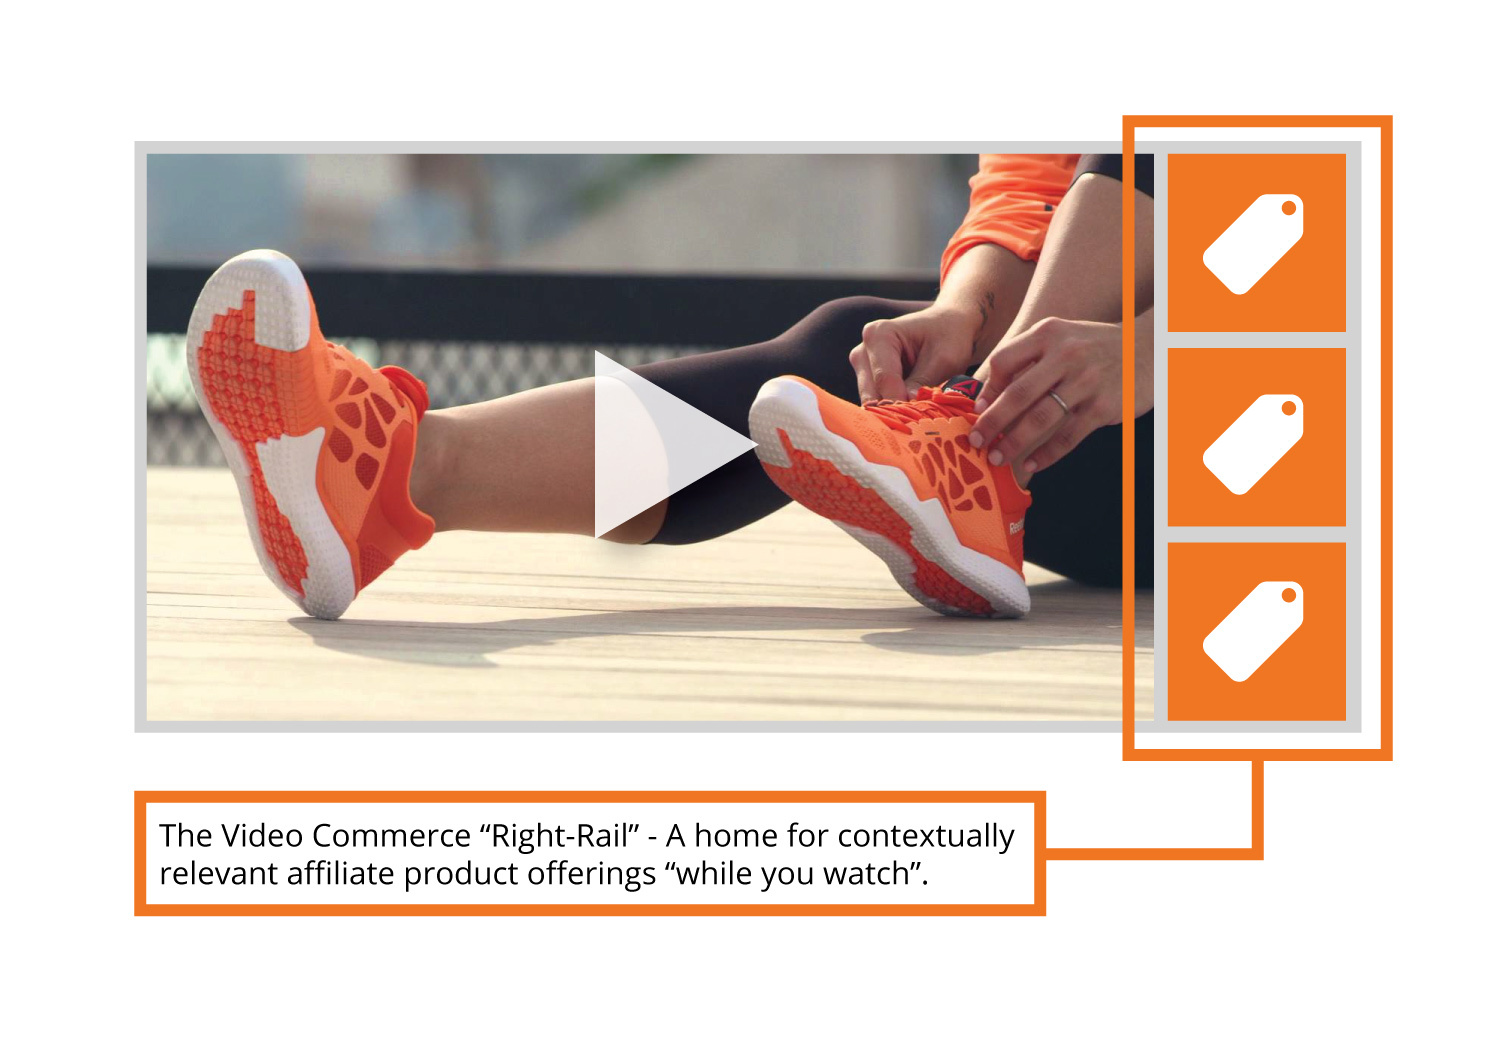 """The video commerce """"Right-Rail"""" - a home for contextually relevant affiliate product offerings while you watch. (Photo: Business Wire)"""